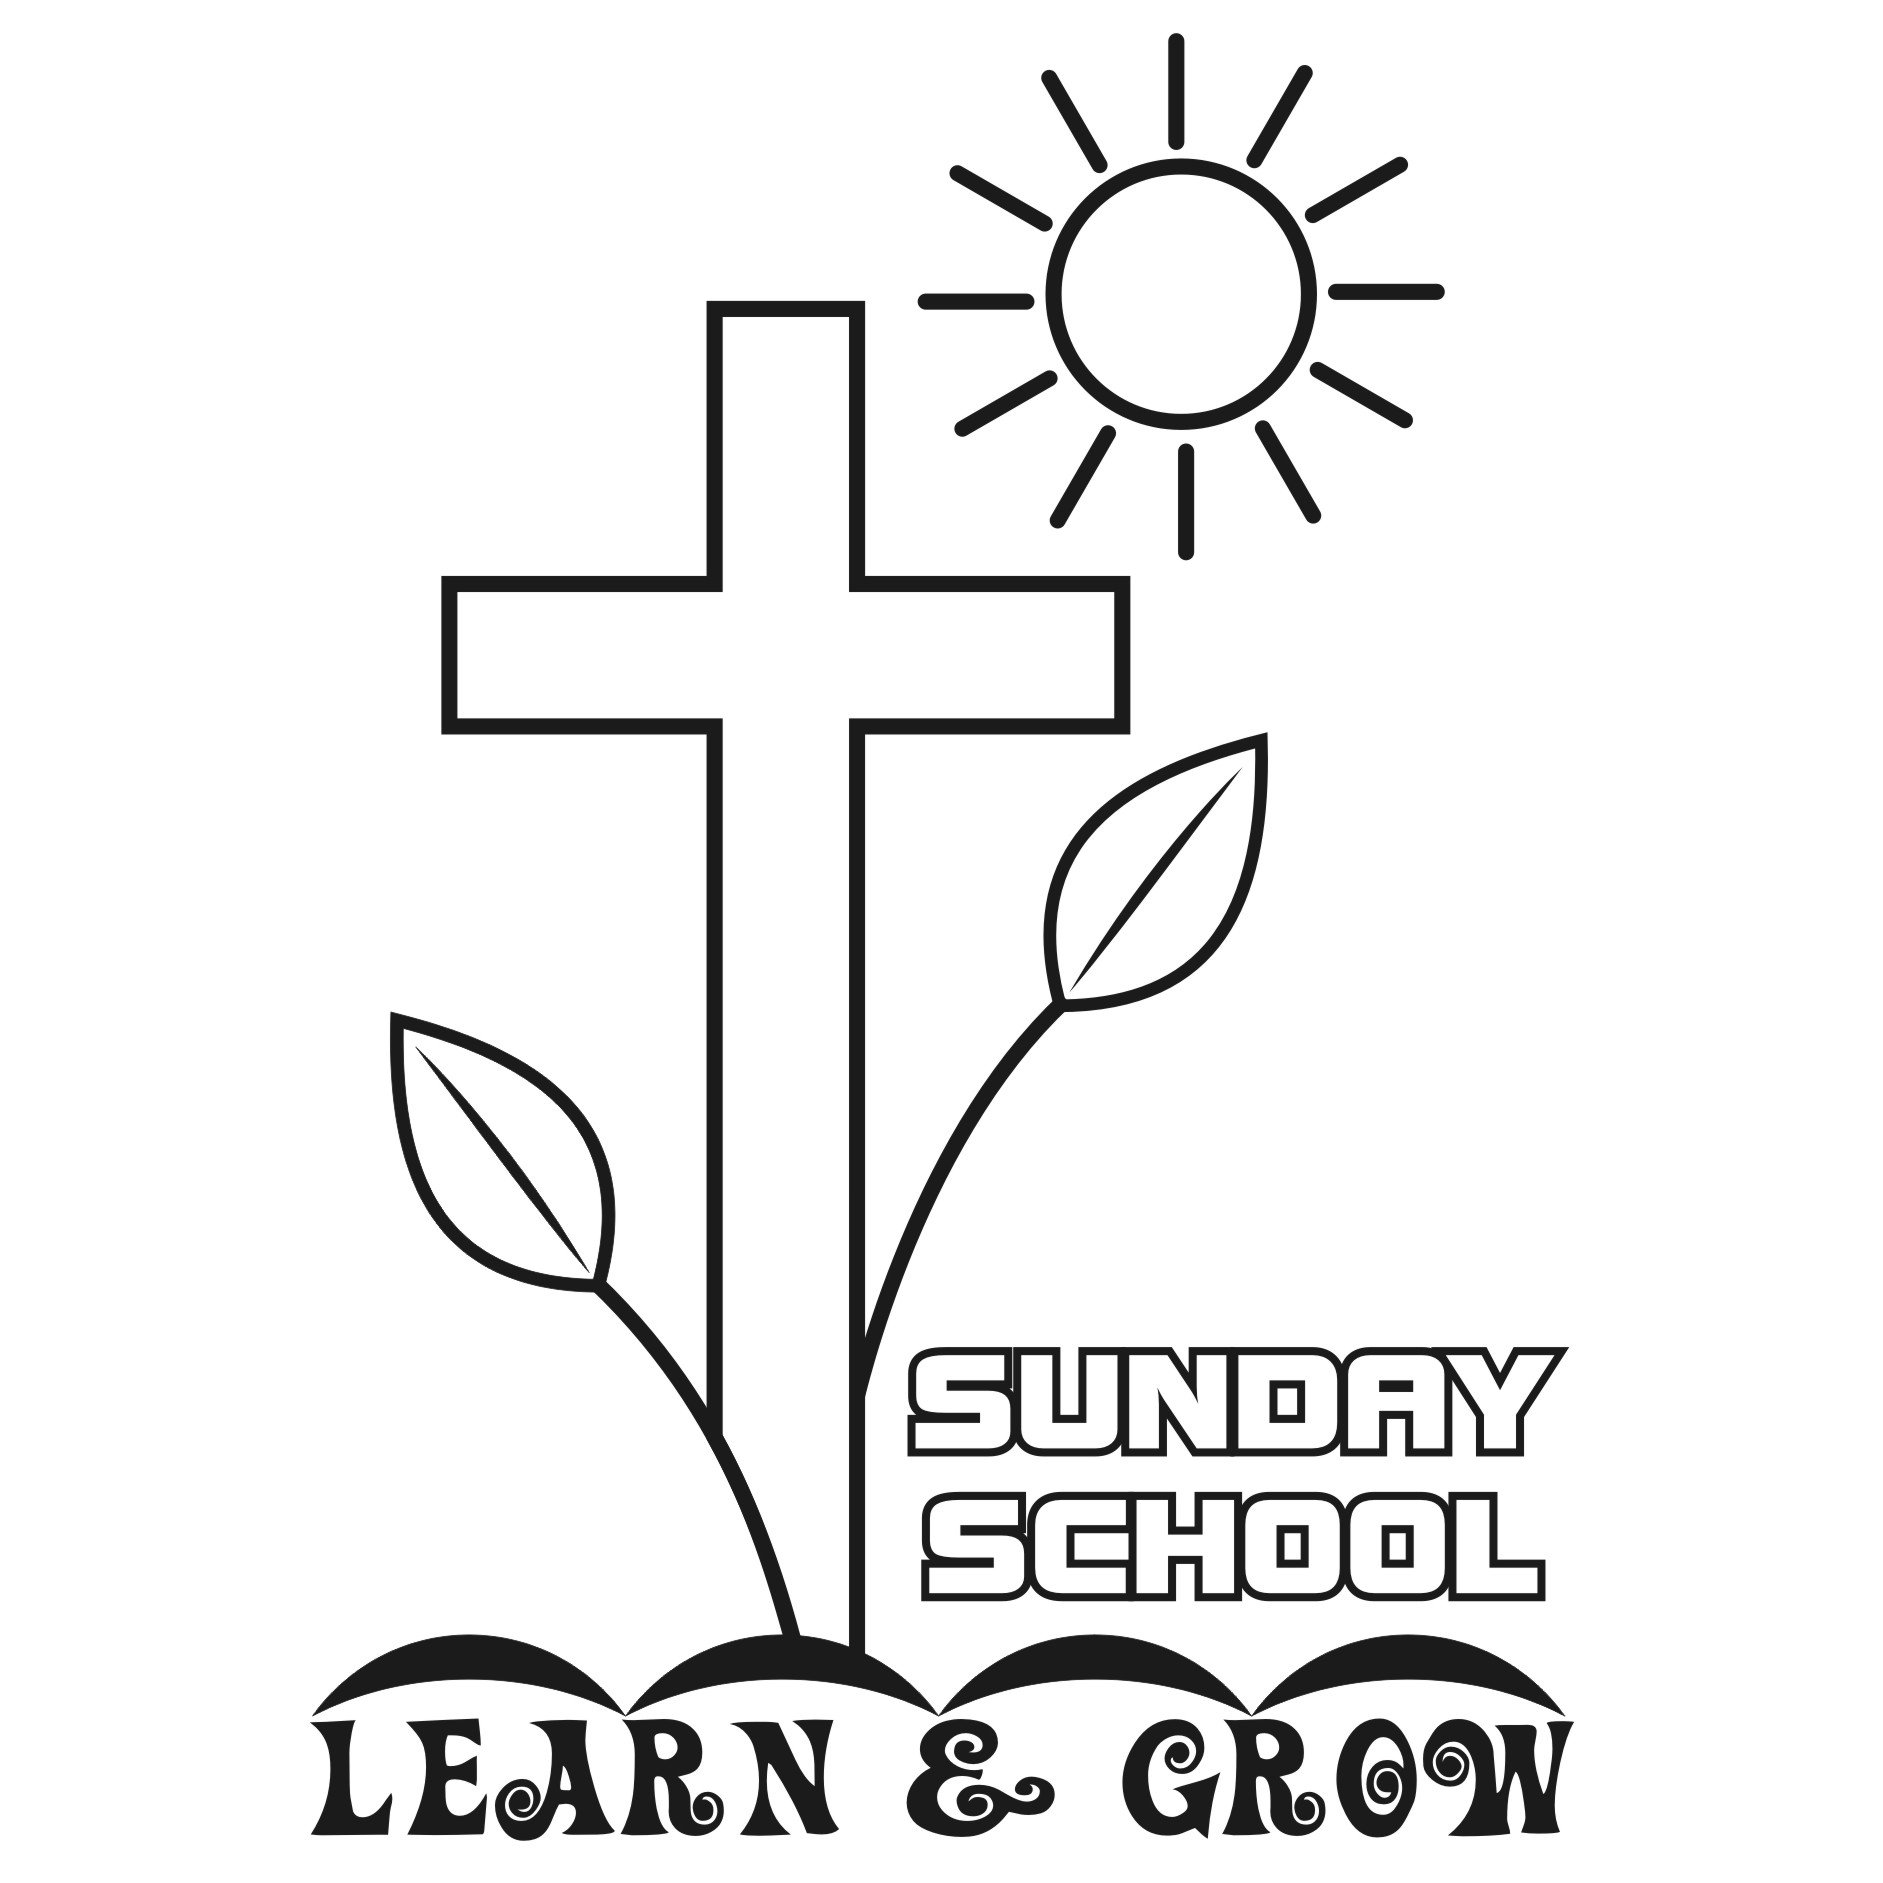 Sunday school clipart images vector library download 97+ Sunday School Clip Art | ClipartLook vector library download